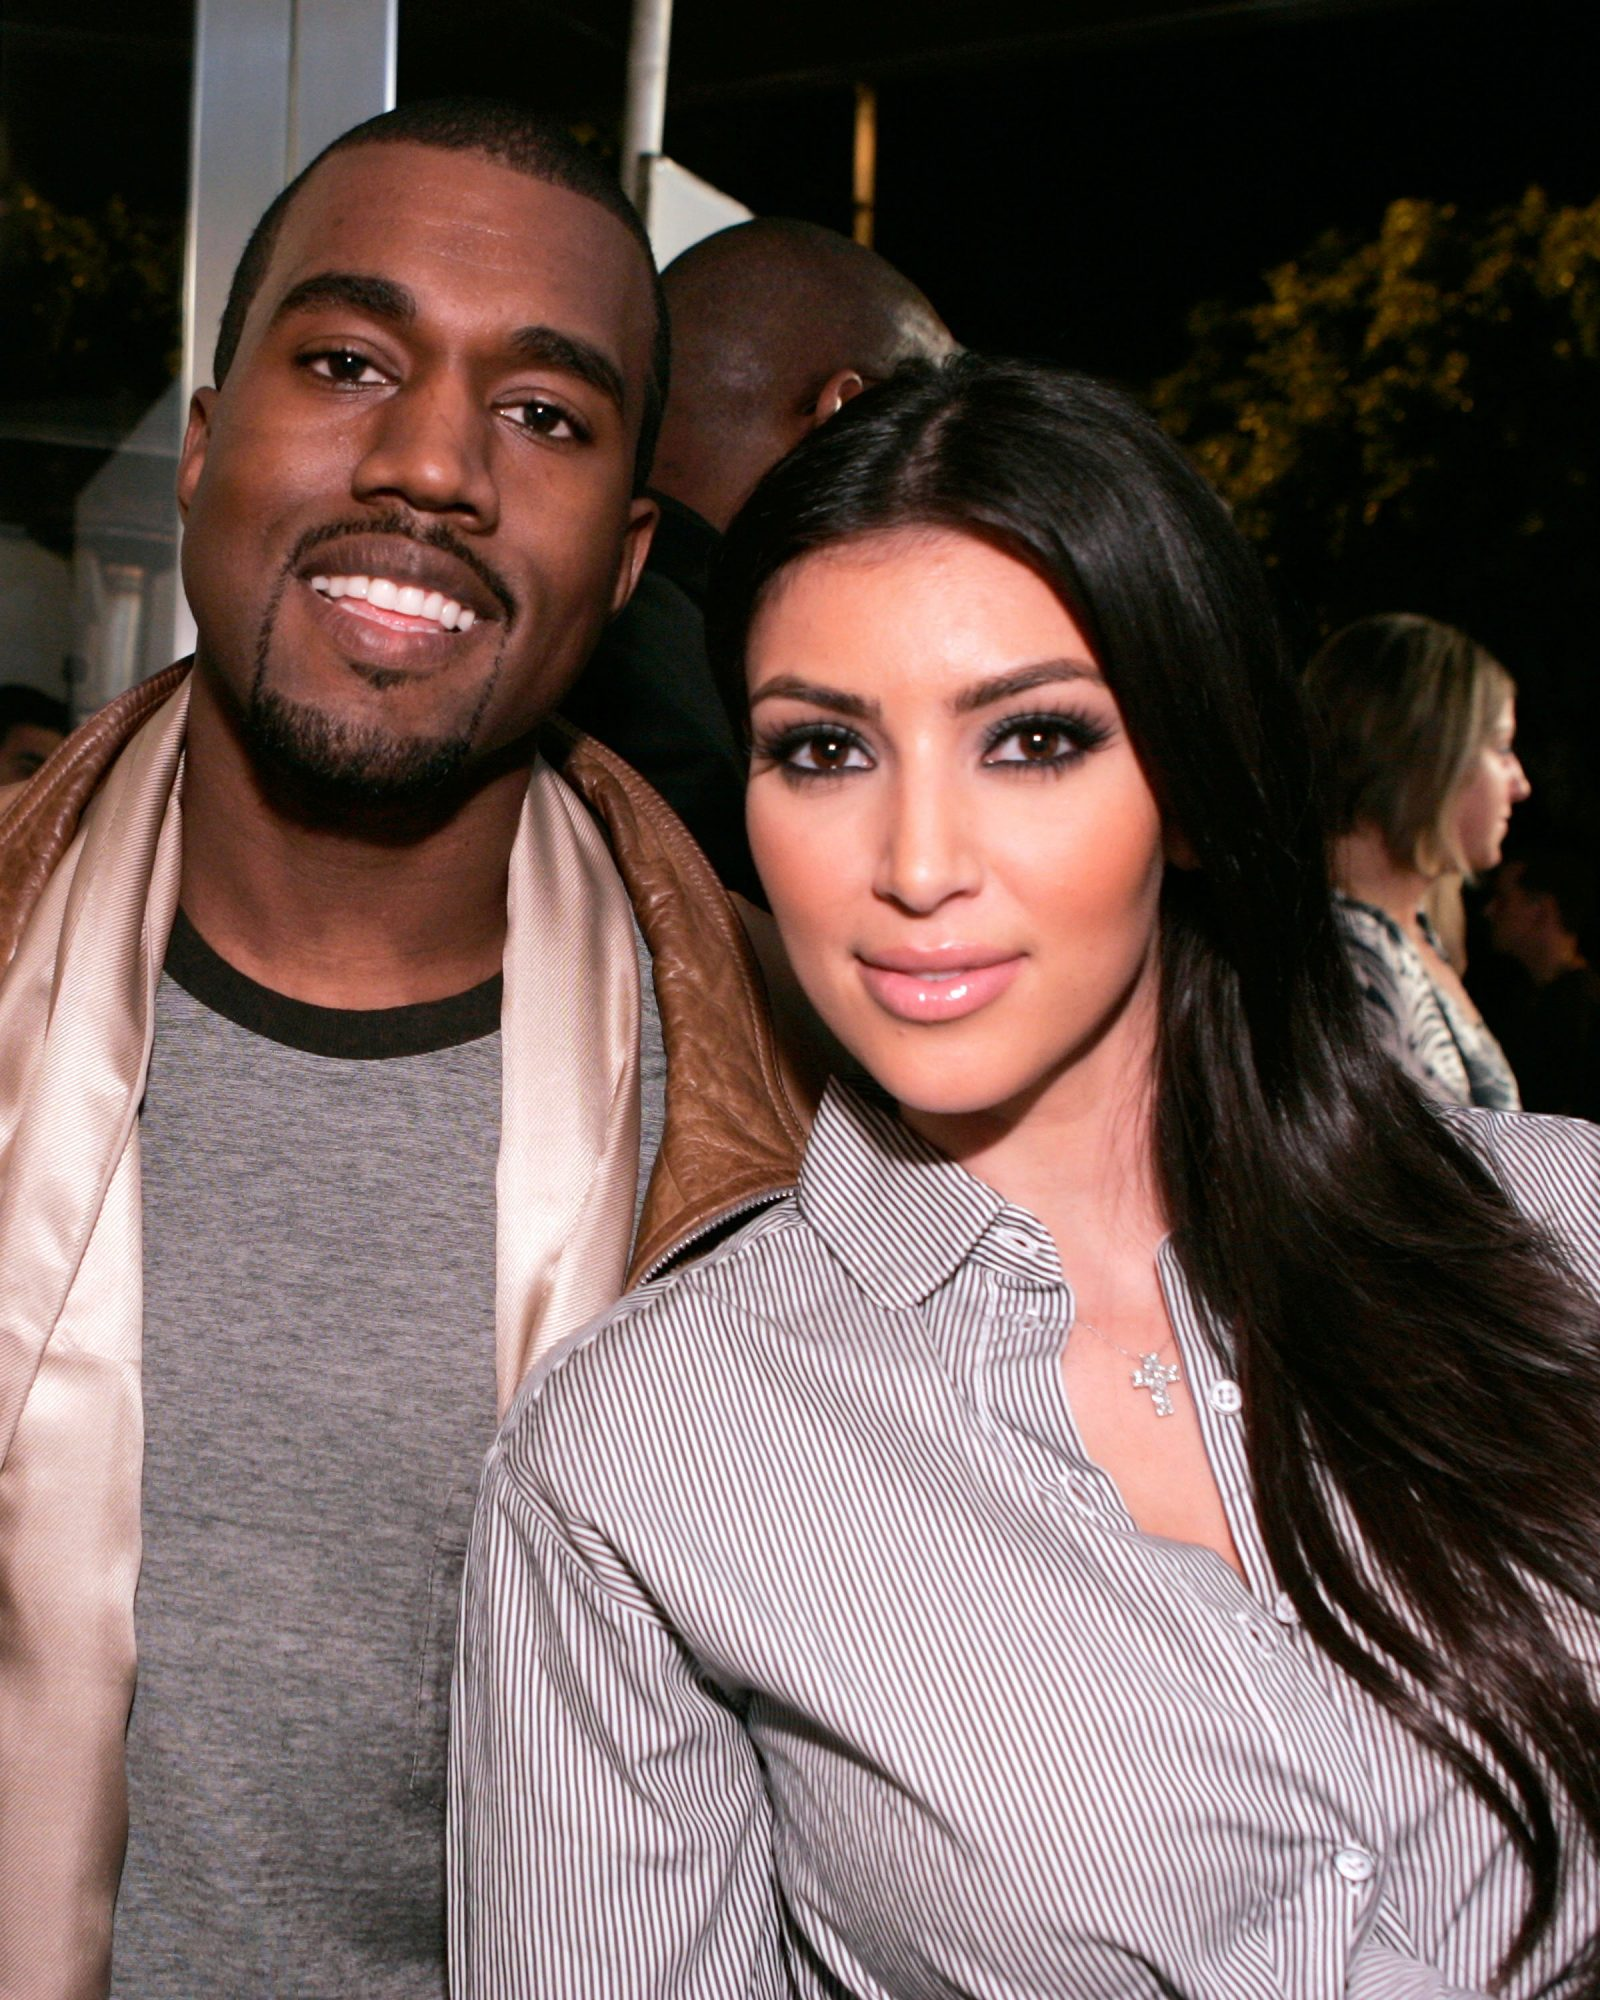 celebrity-throwback-photos-kim-kardashian-kanye-west-1215.jpg